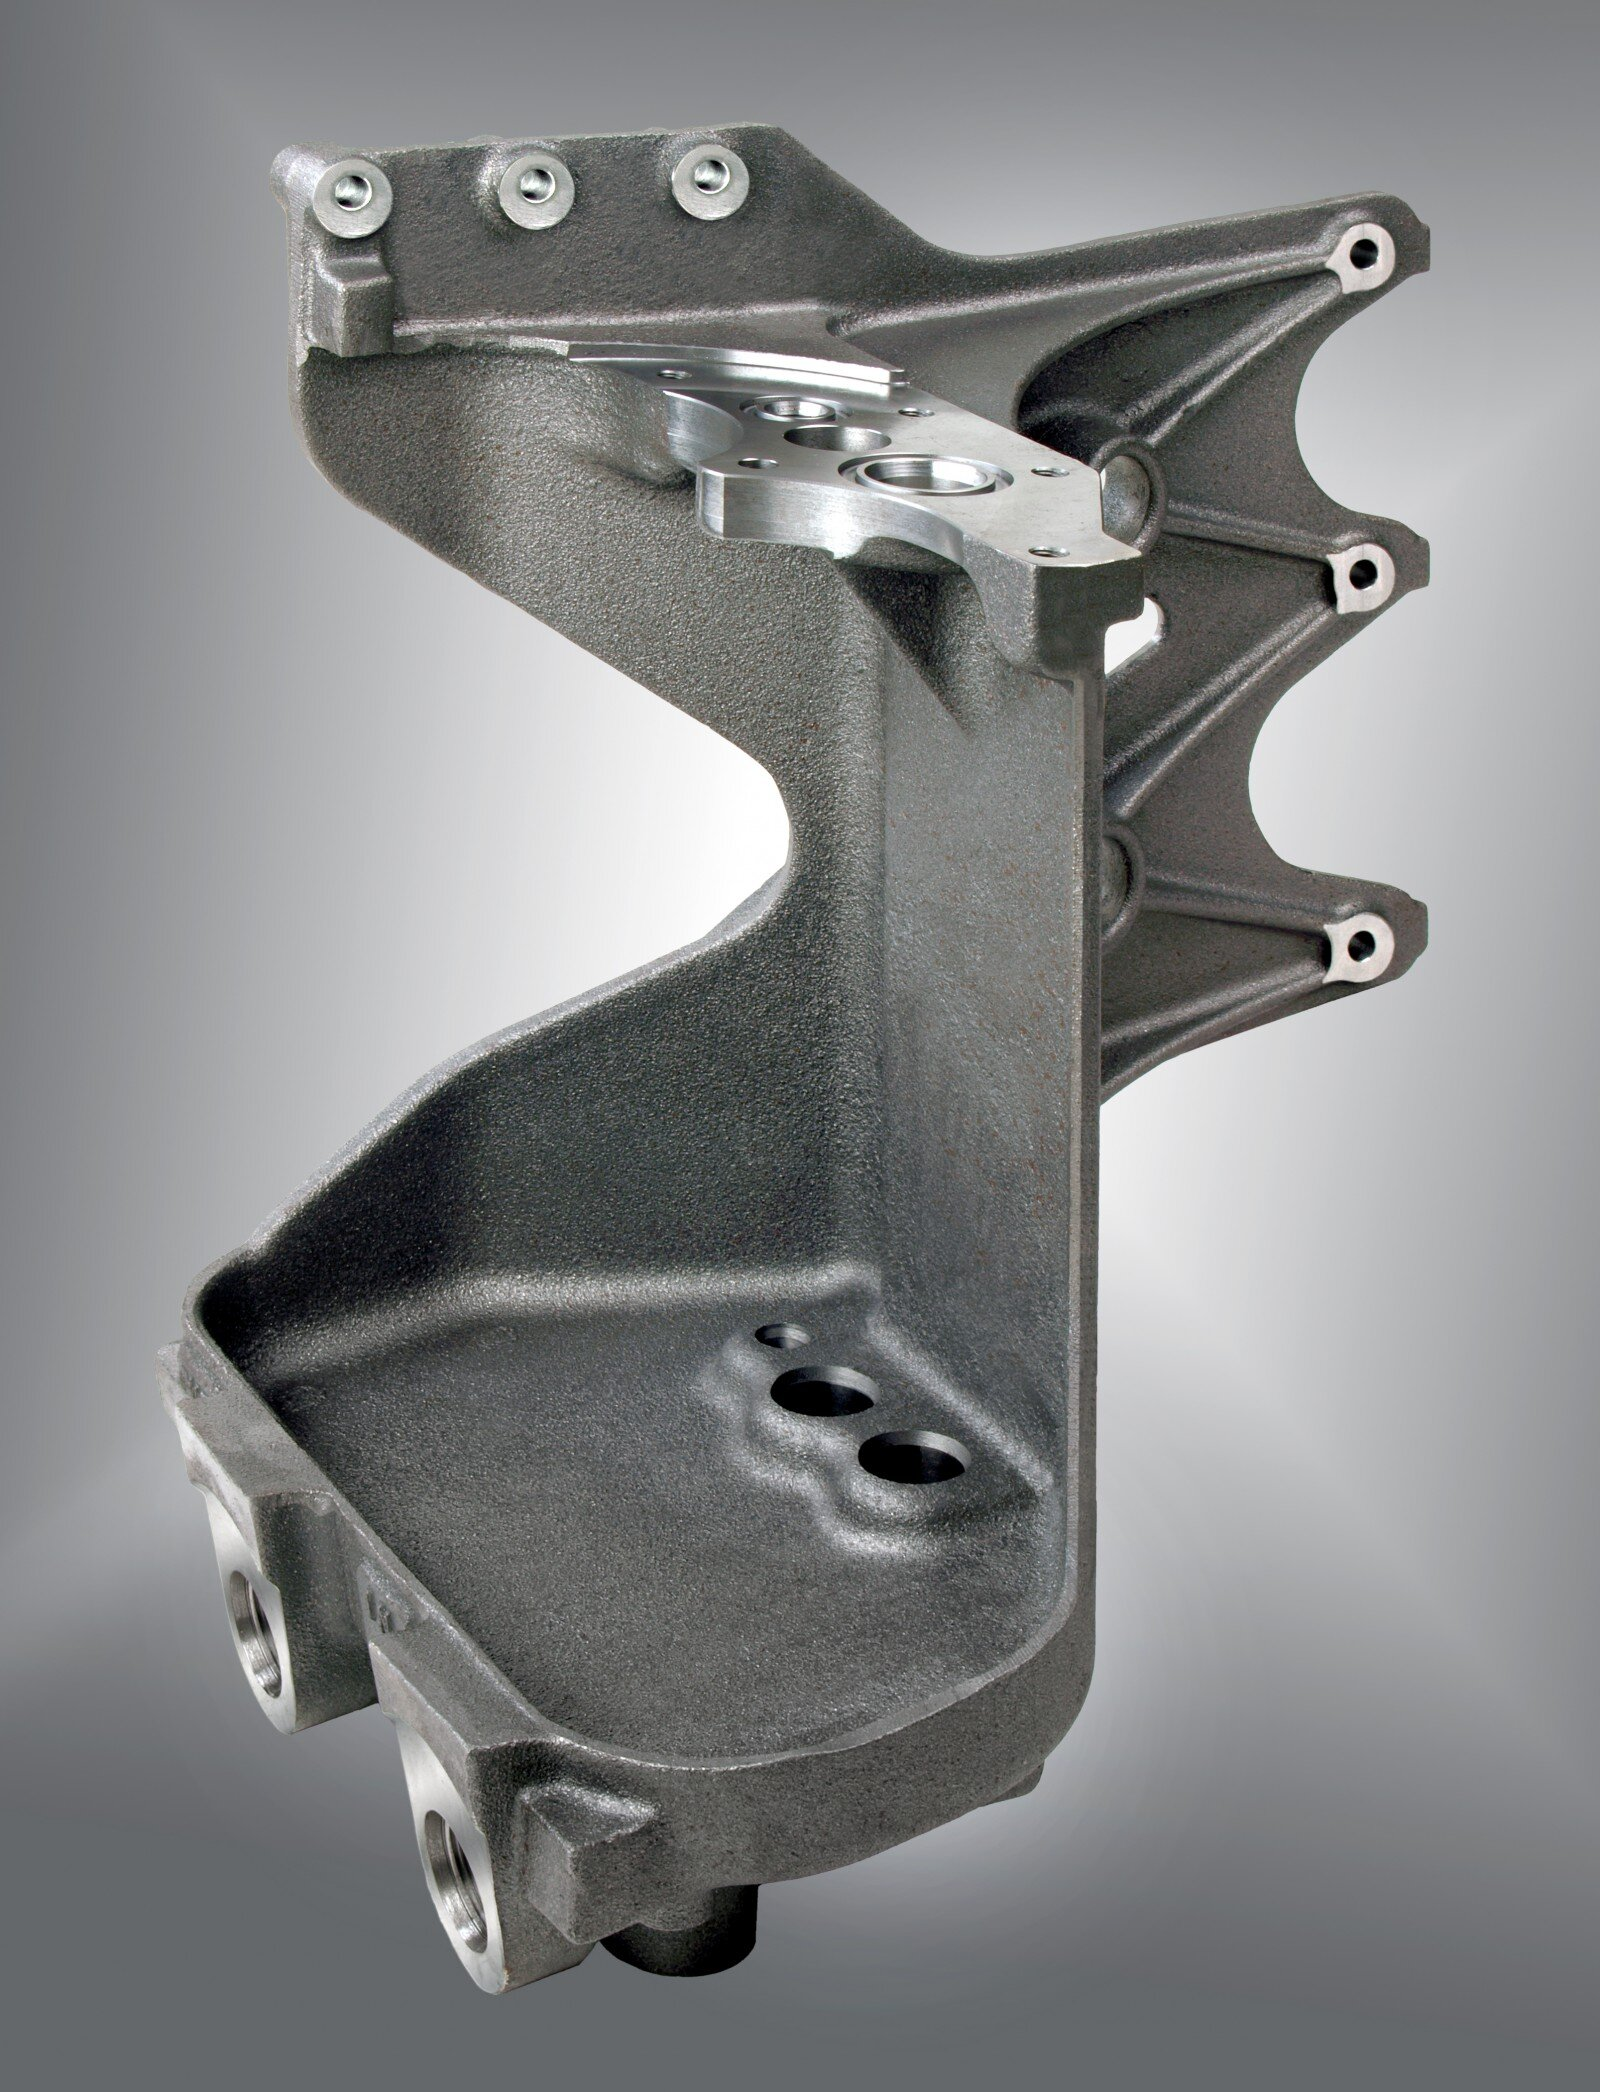 spheroidal cast iron (EN-GJS-400-15) with high nodularity is used in this fixation of a fuel pump for trucks